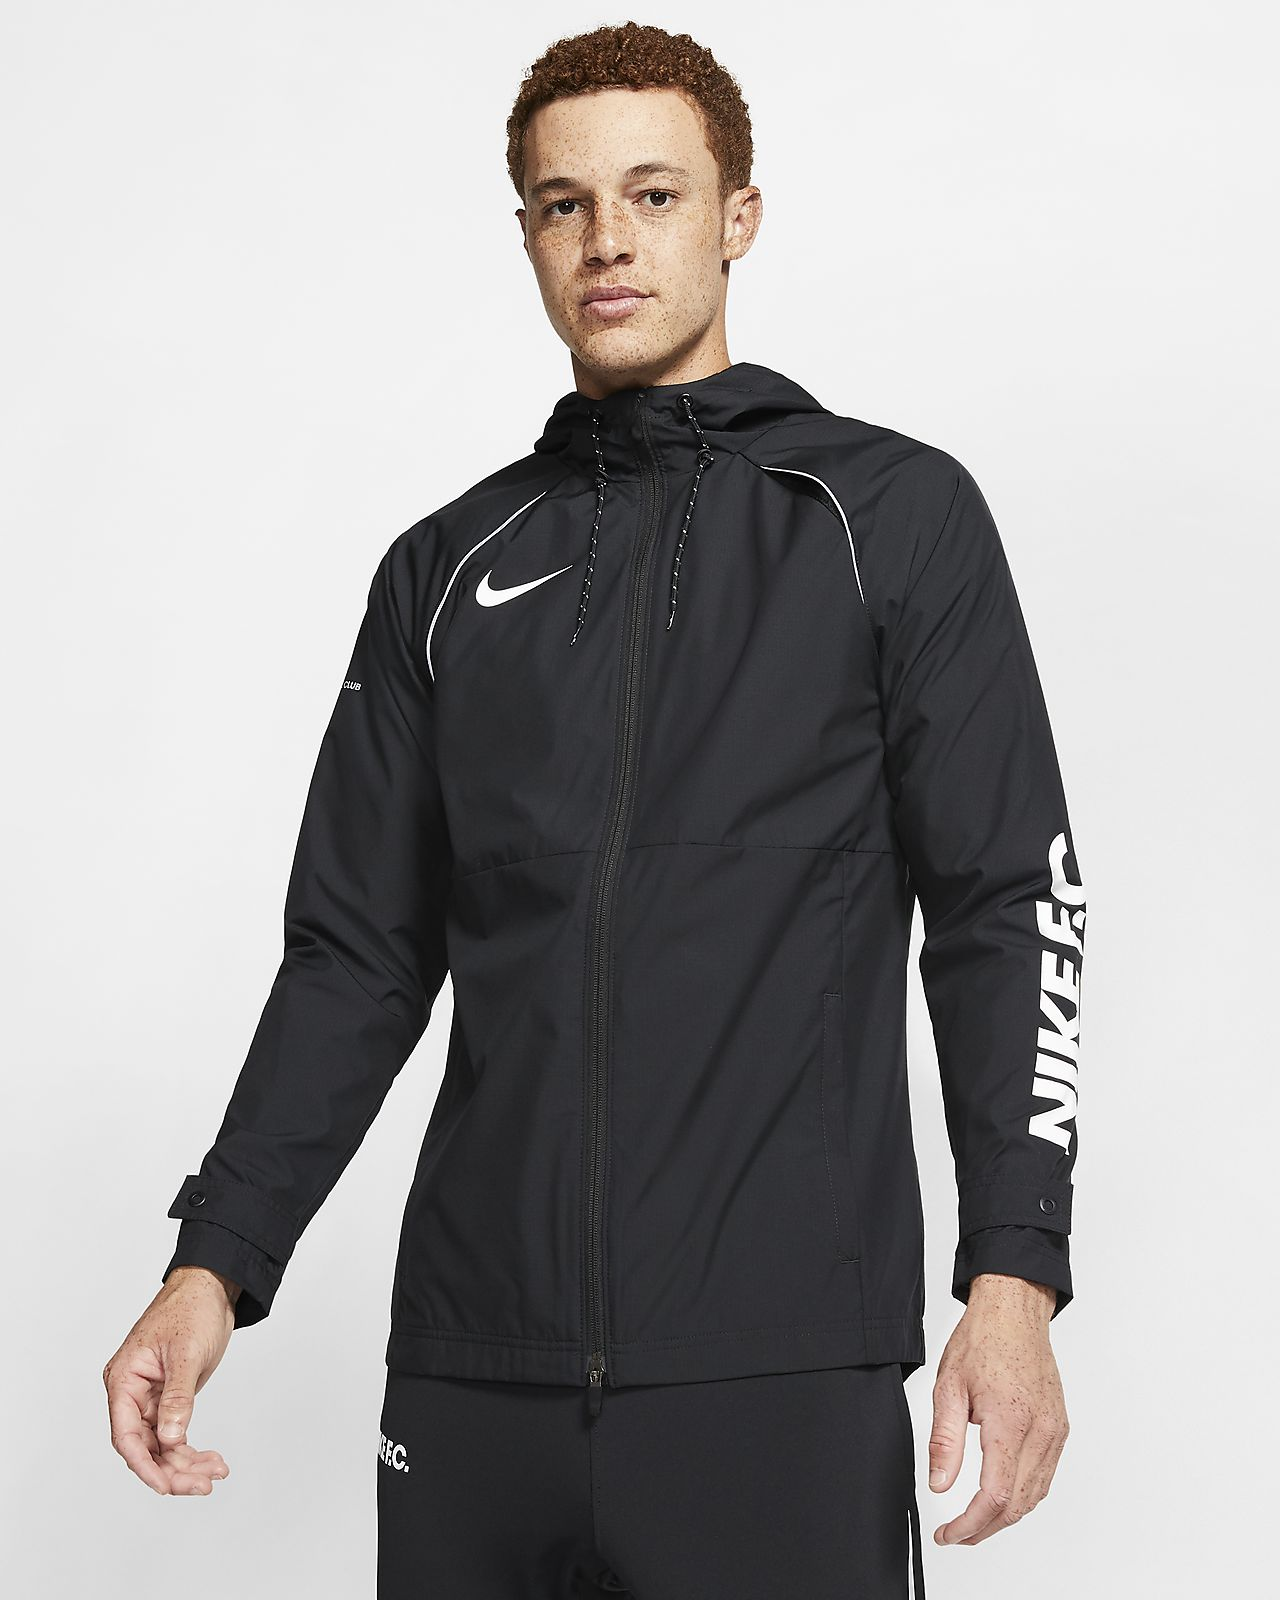 Nike F.C. All-Weather Fan Men's Football Jacket